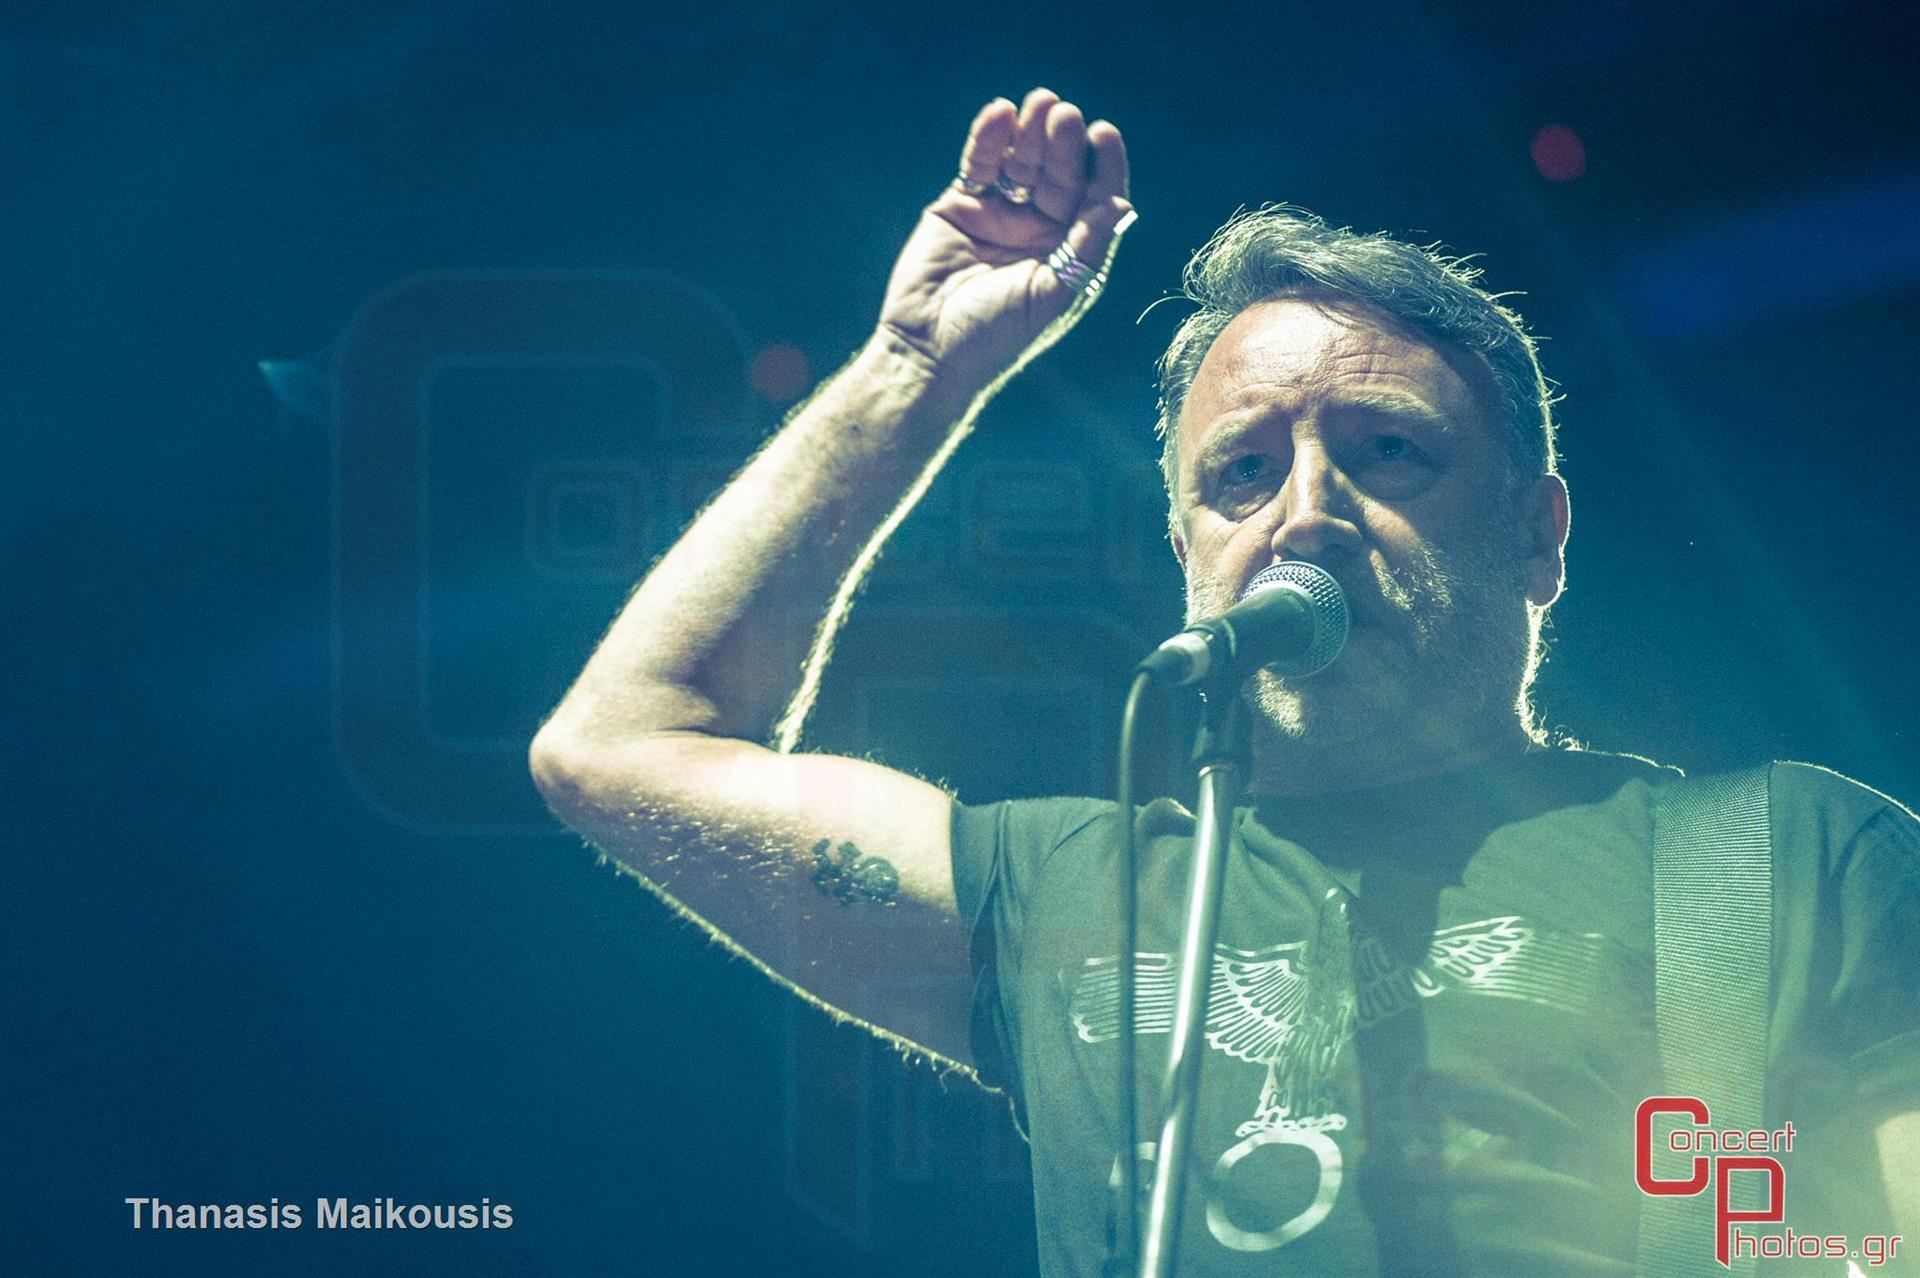 Peter Hook & The Light -Peter Hook & The Light Ejekt 2013 photographer: Thanasis Maikousis - concertphotos_-9262